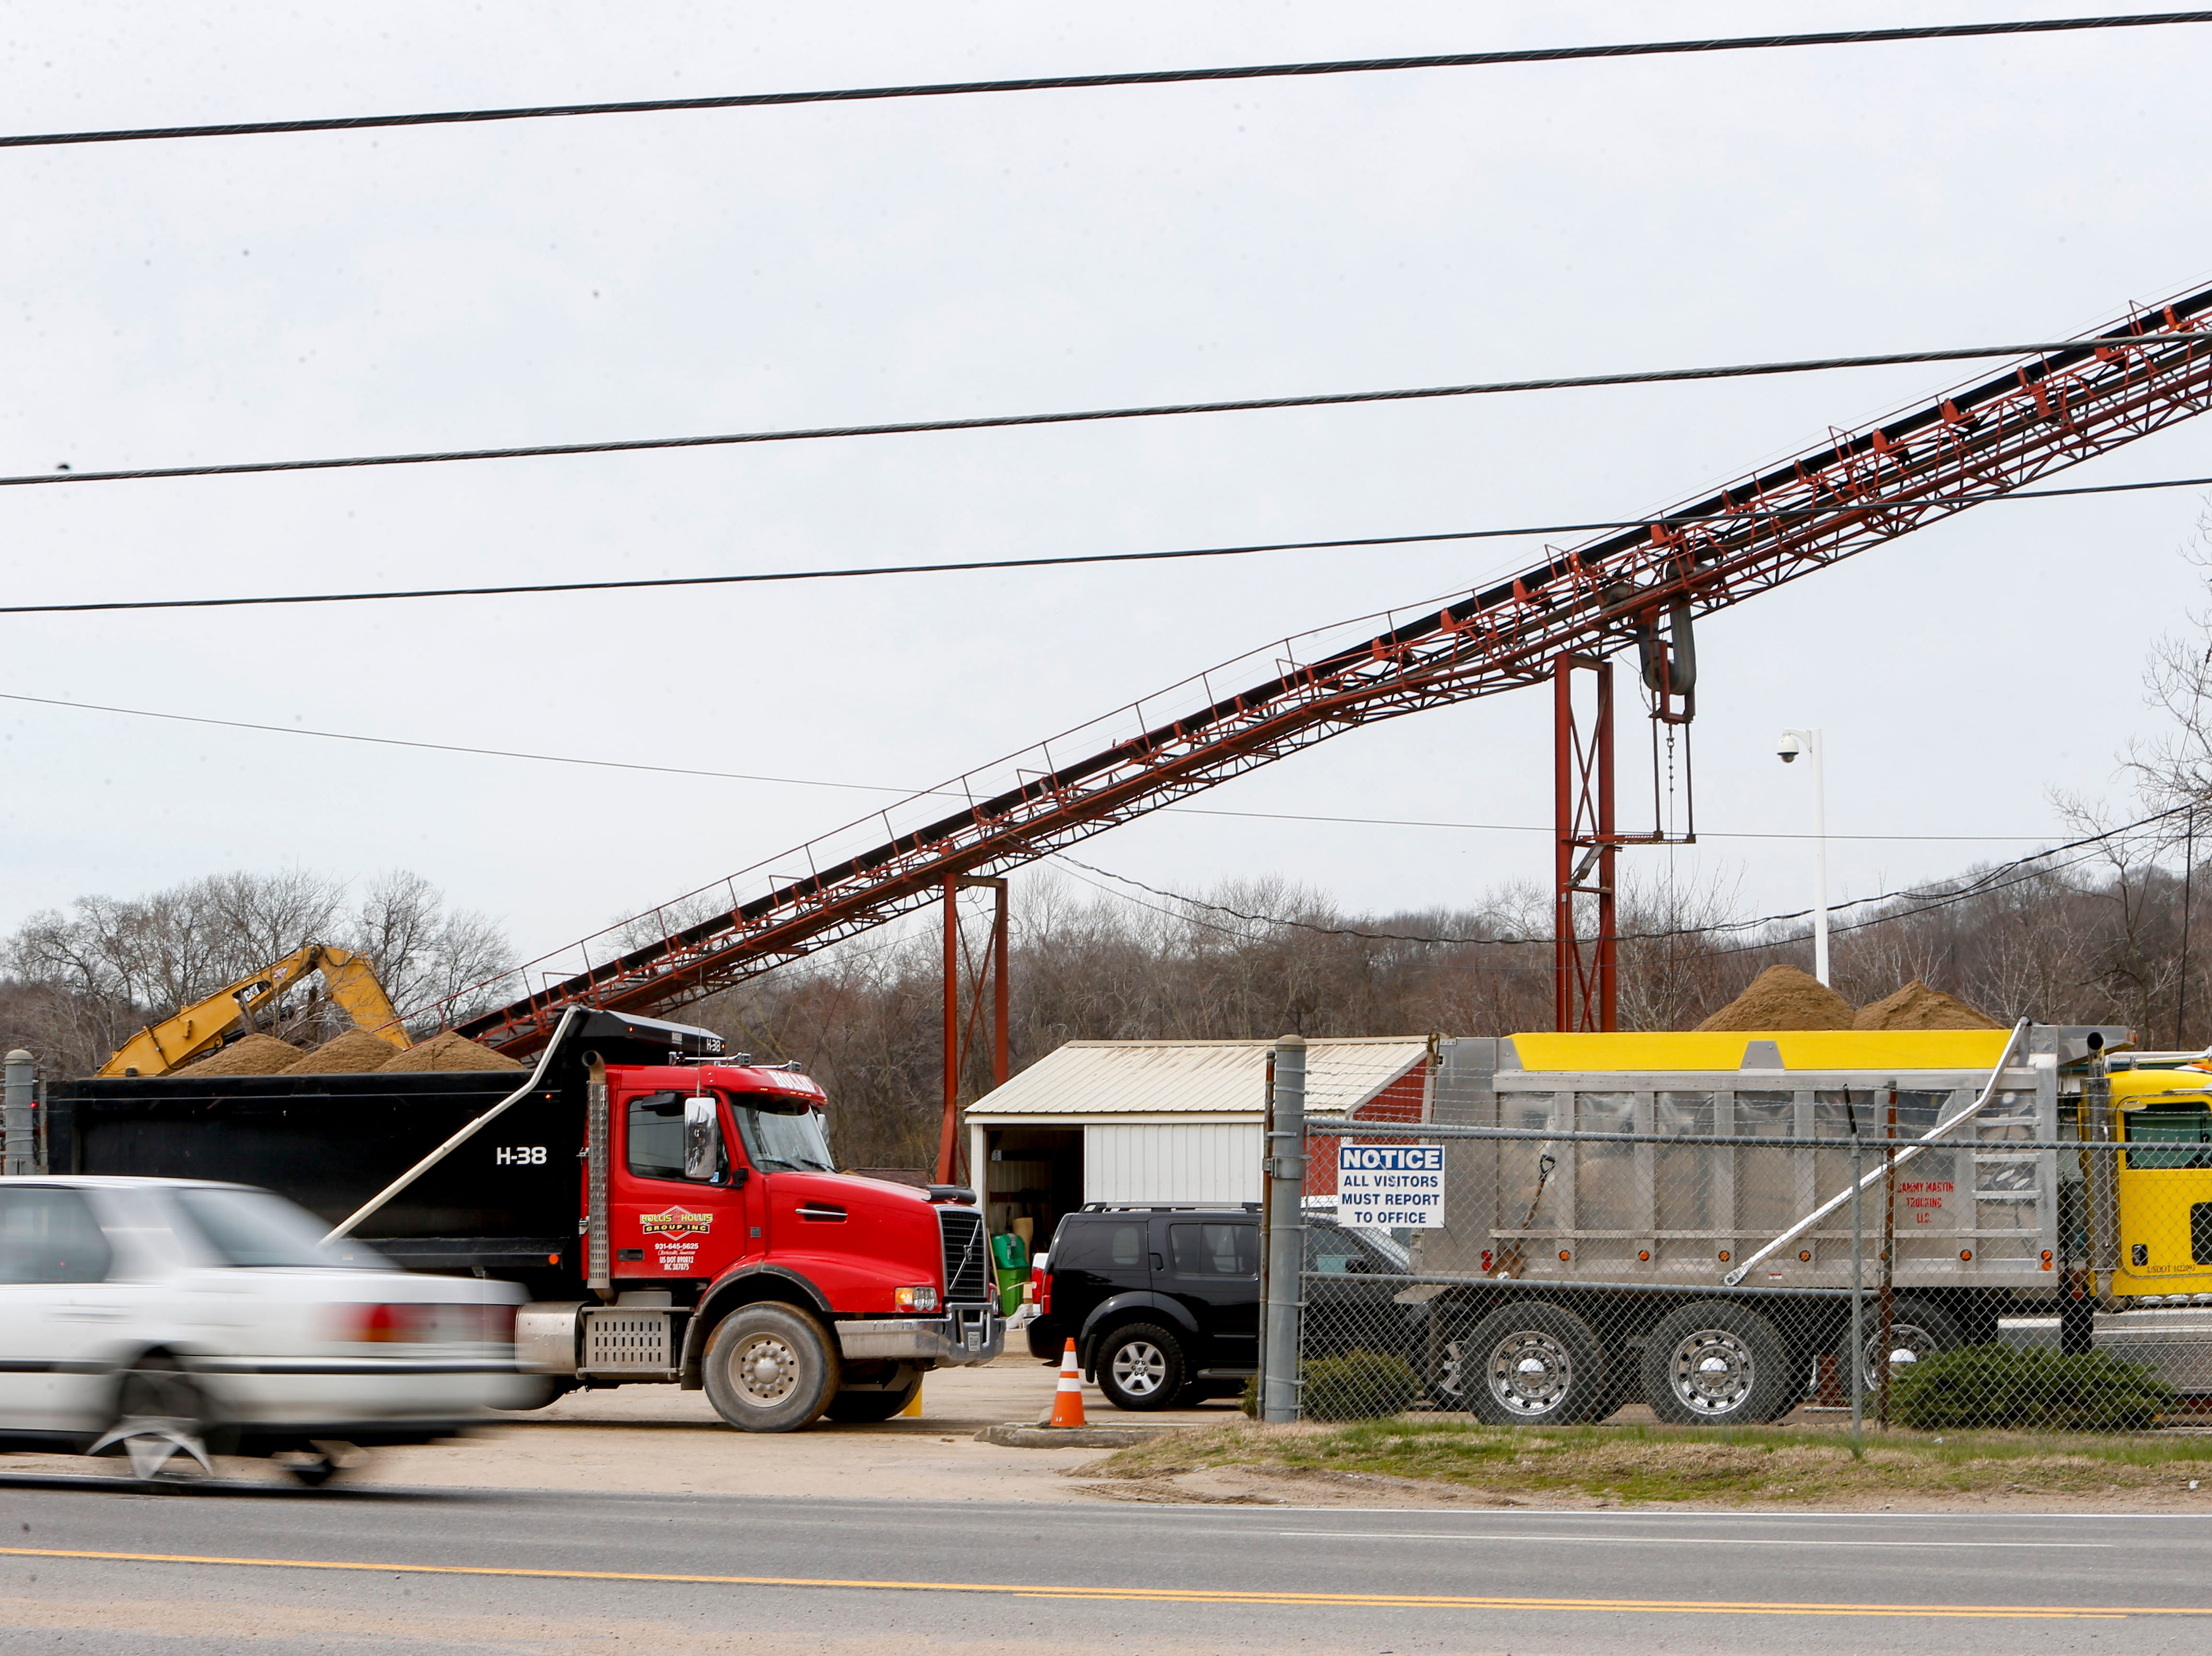 Trucks wait inside the lot with their beds full to transport material while barges cannot travel the river at Pine Bluff Materials in Clarksville, KY., on Tuesday, March 12, 2019.